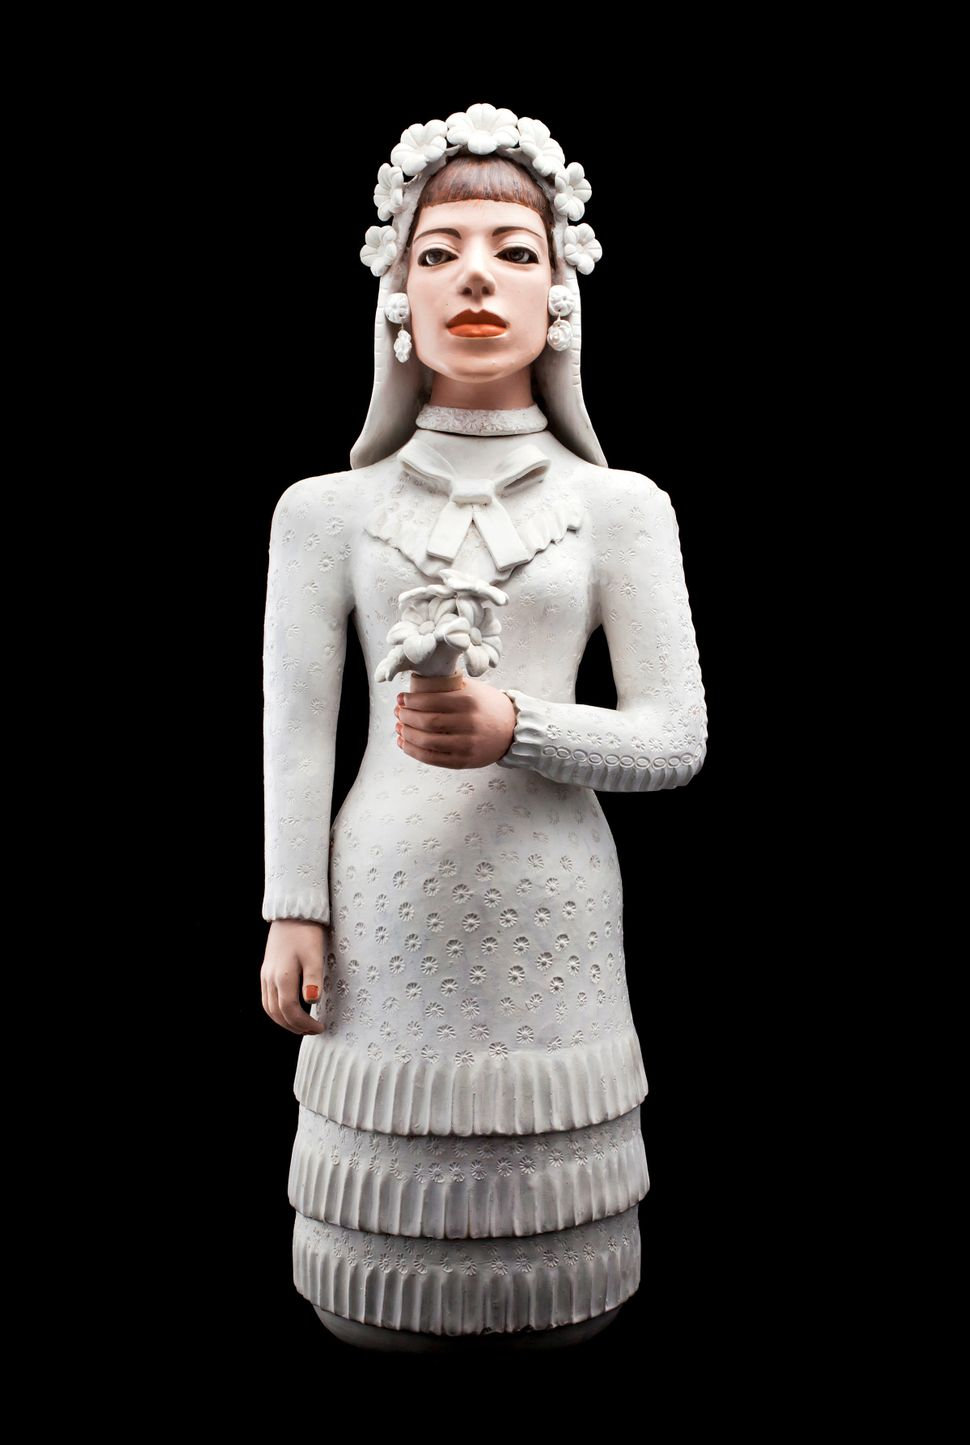 Isabel Mendes da Cunha 